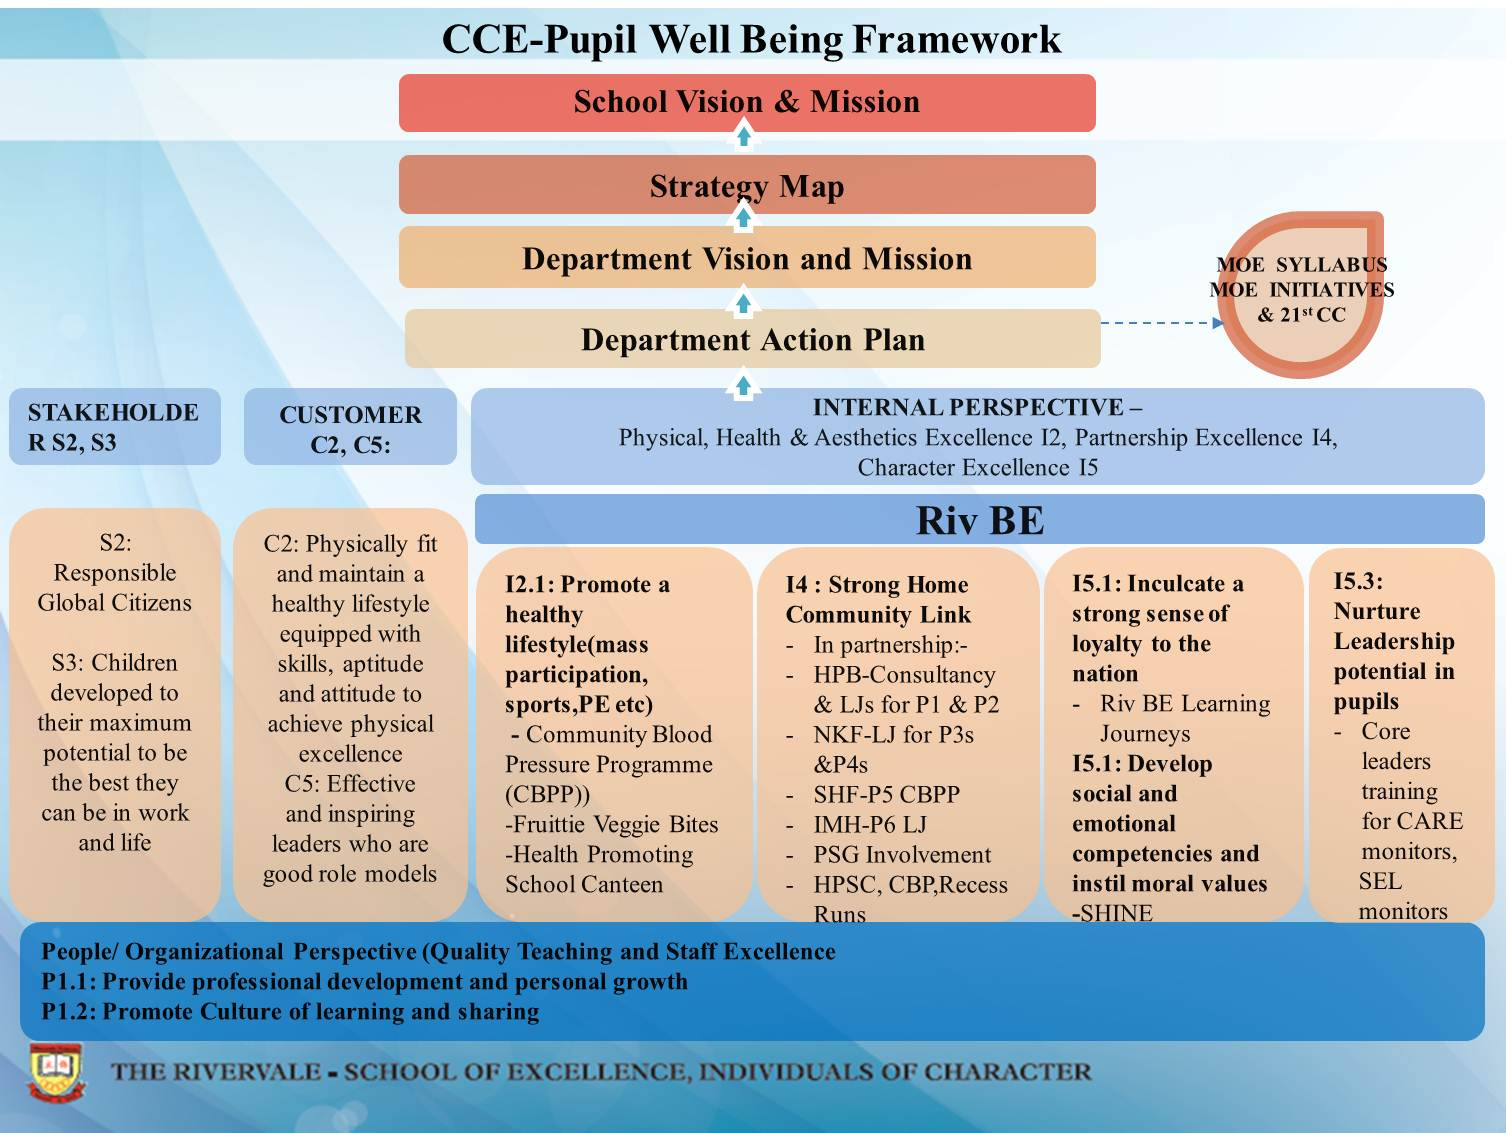 CCE Pupil Well Being Framework